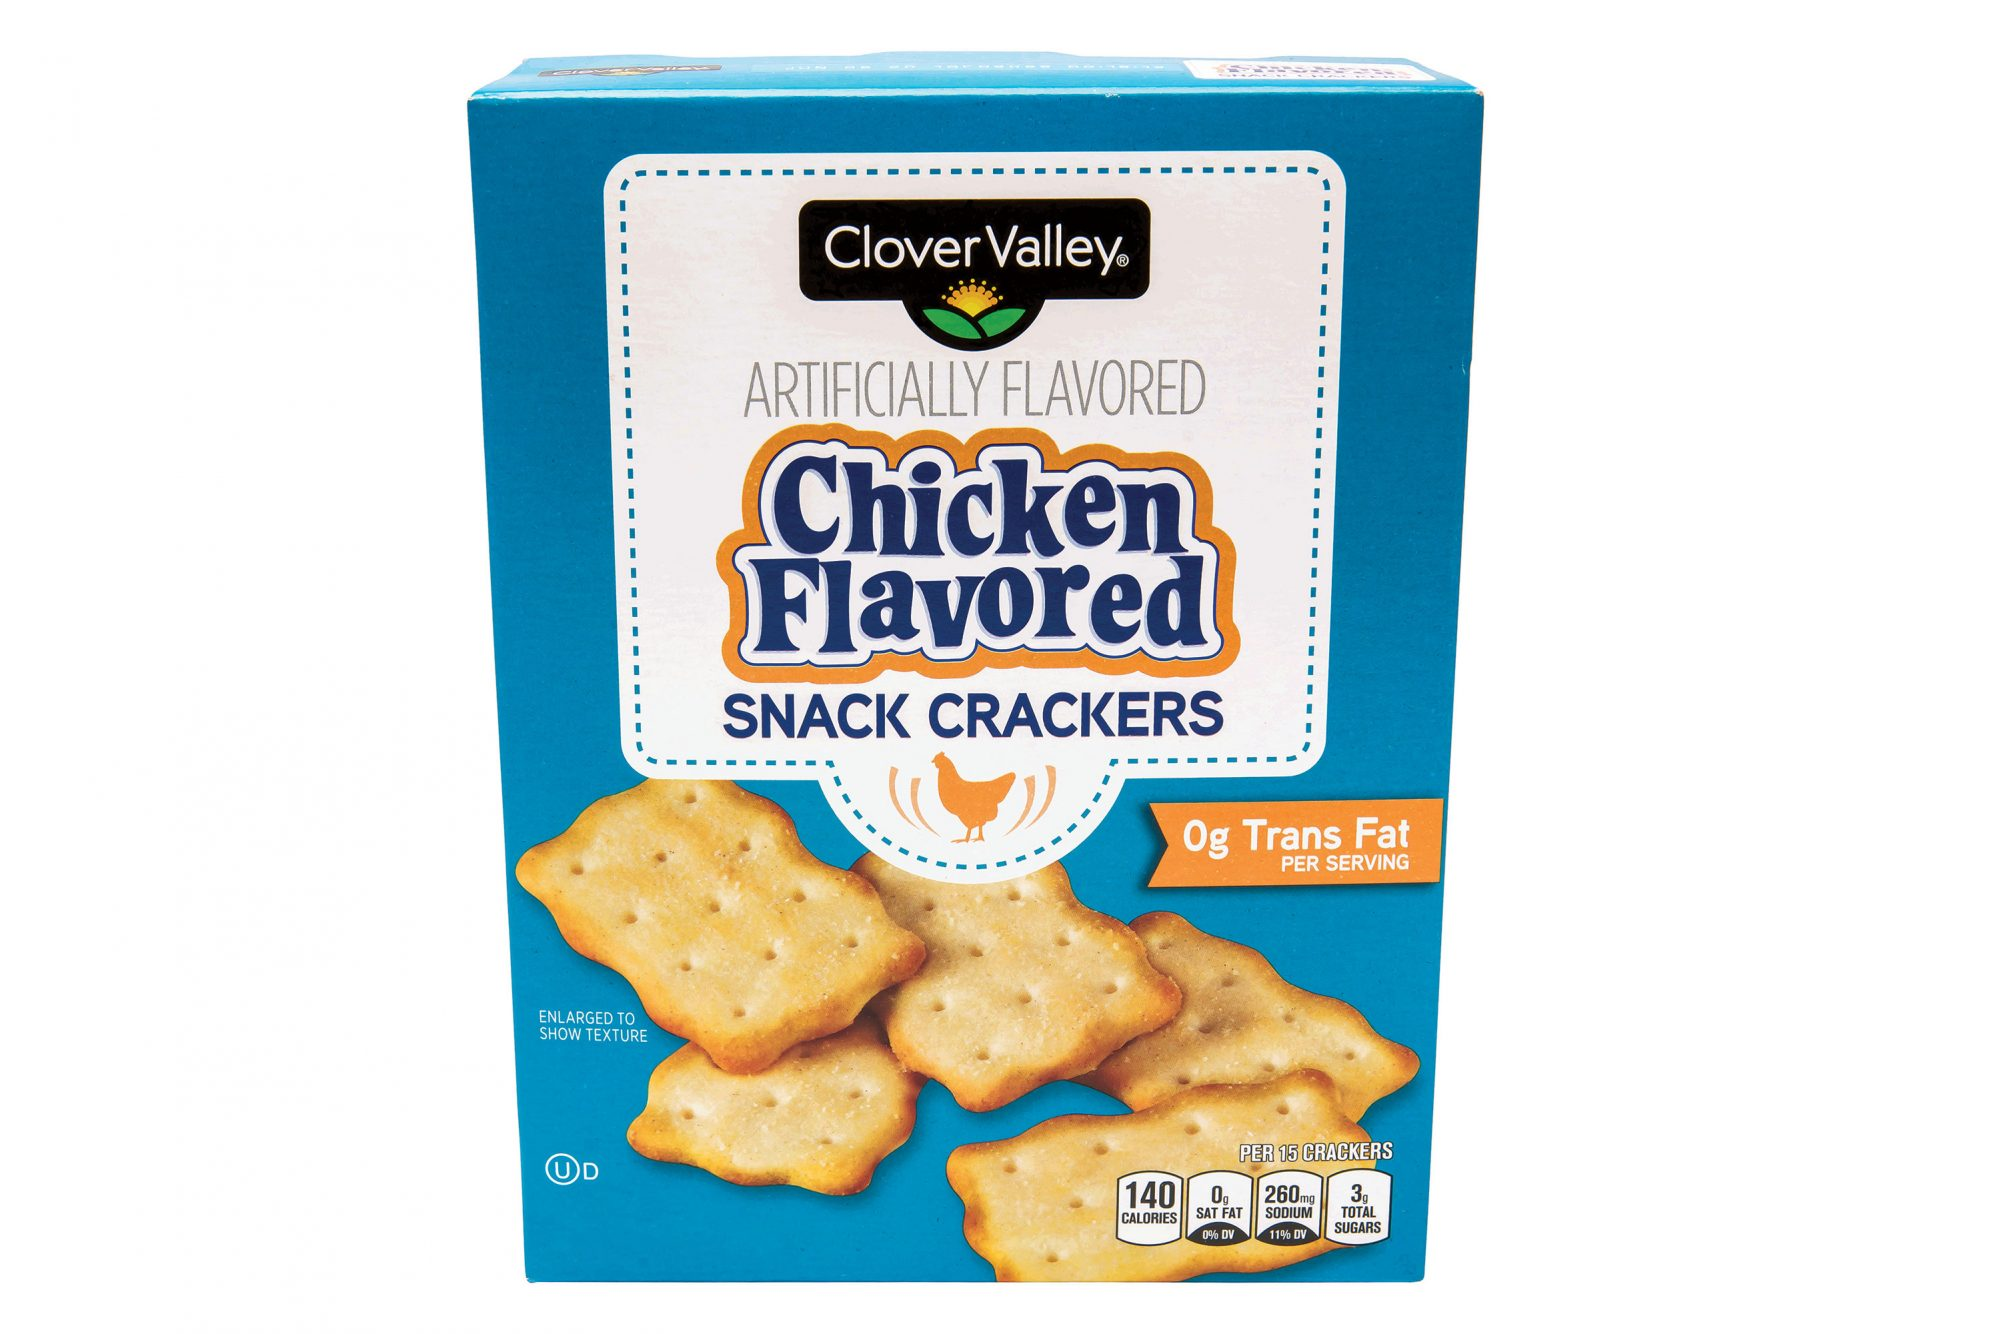 CV_Crackers_ChickenFlavored